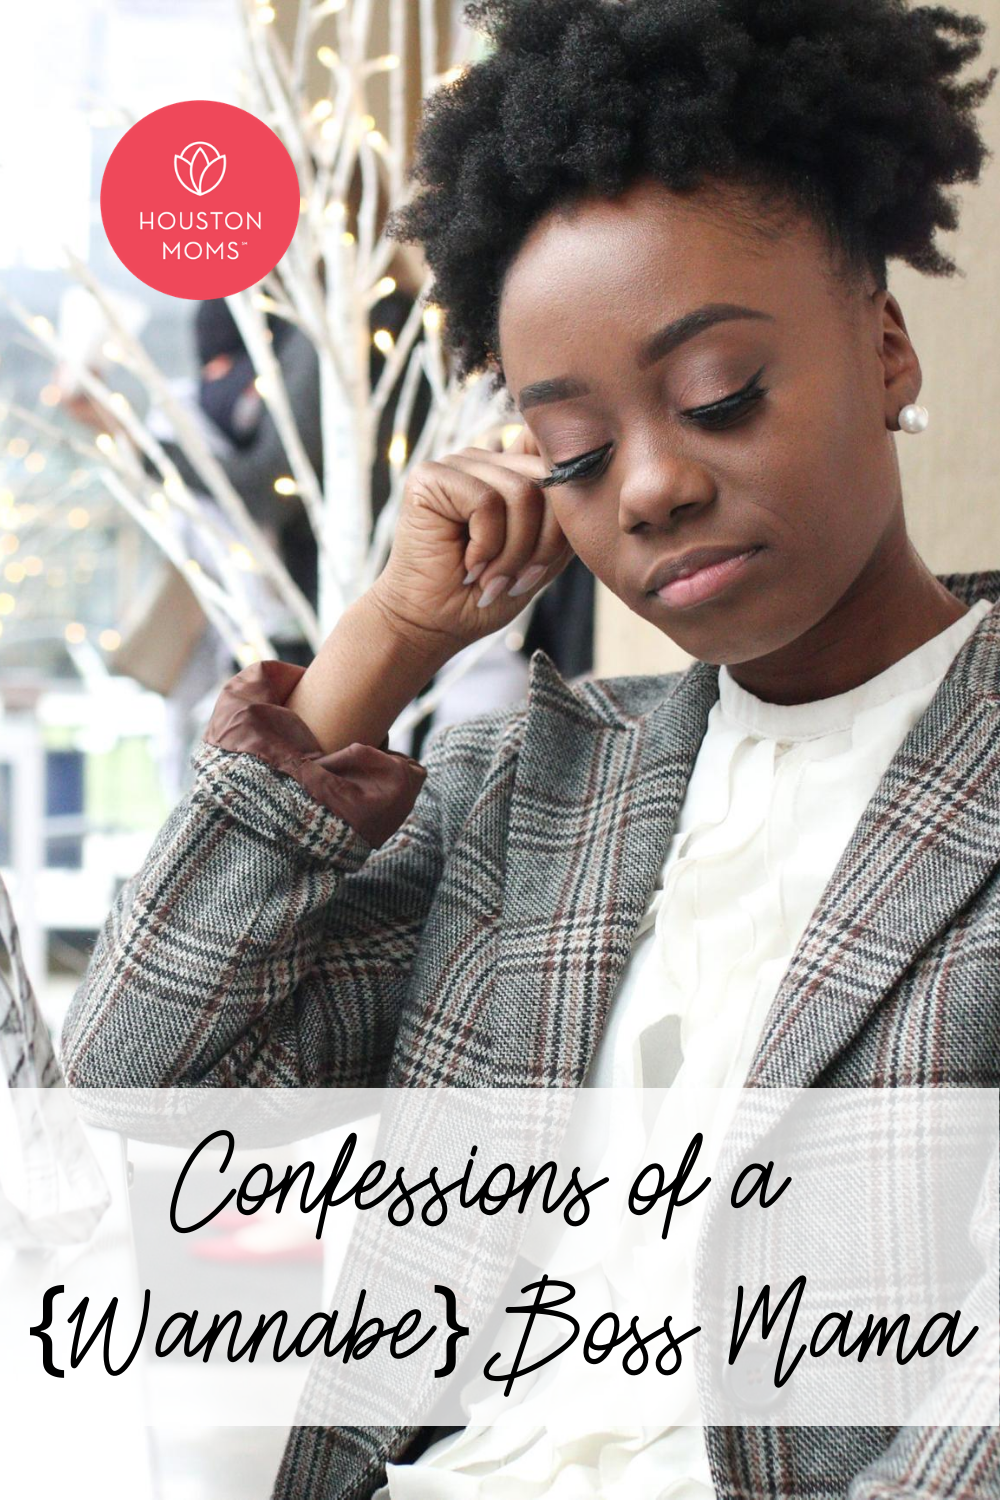 """Houston Moms """"Confessions of a {Wannabe} Boss Mom"""" #houstonmoms #houstonmomsblog #momsaroundhouston"""